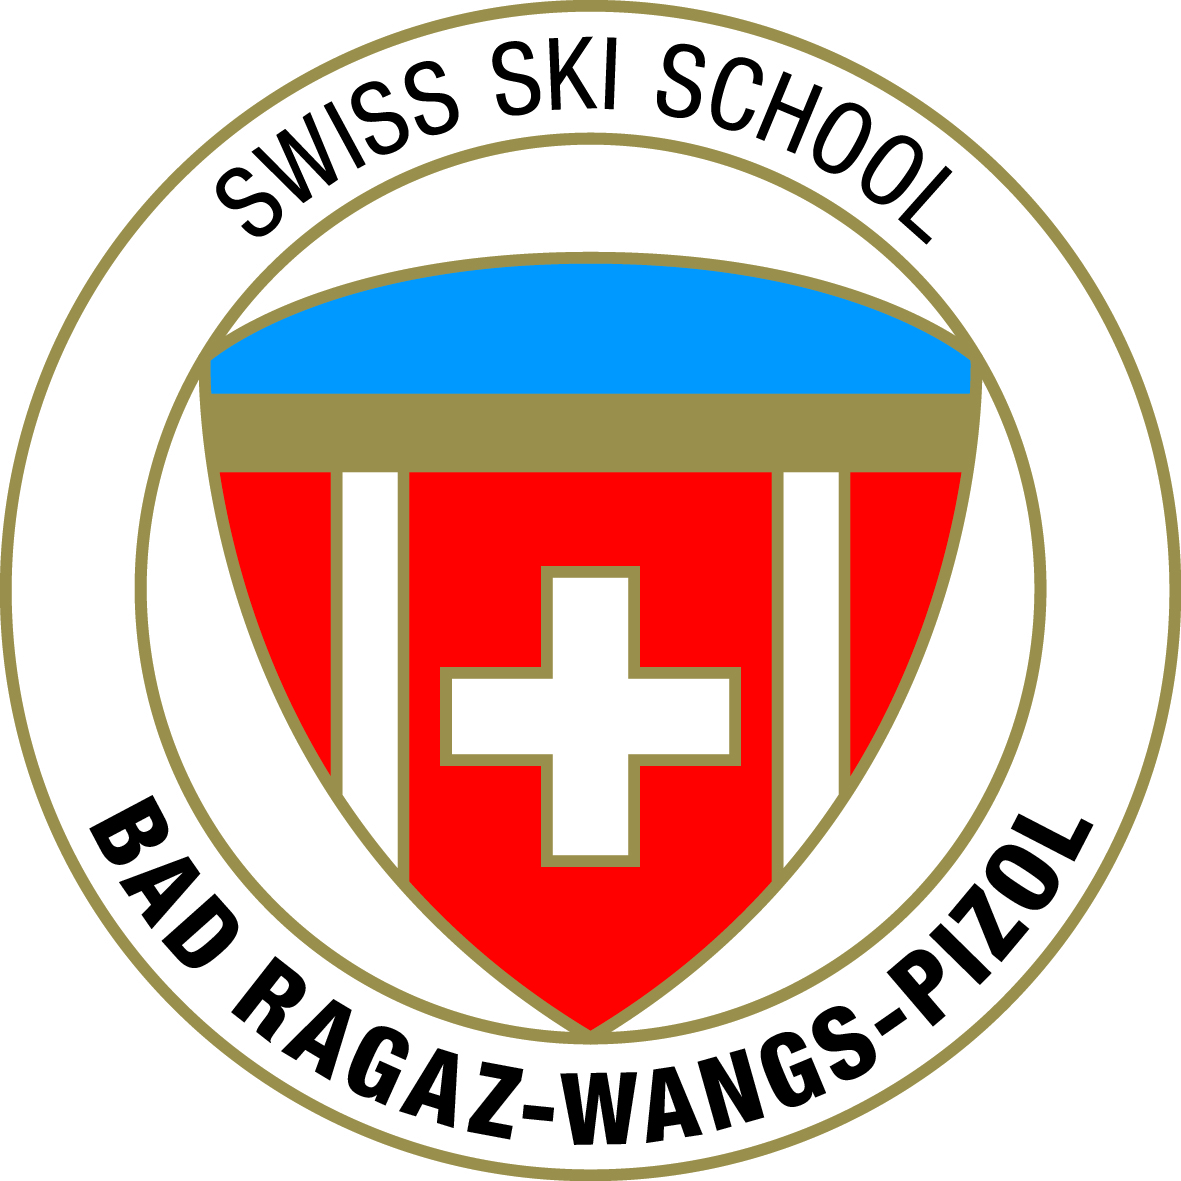 Swiss Ski School Bad Ragaz-Wangs-Pizol